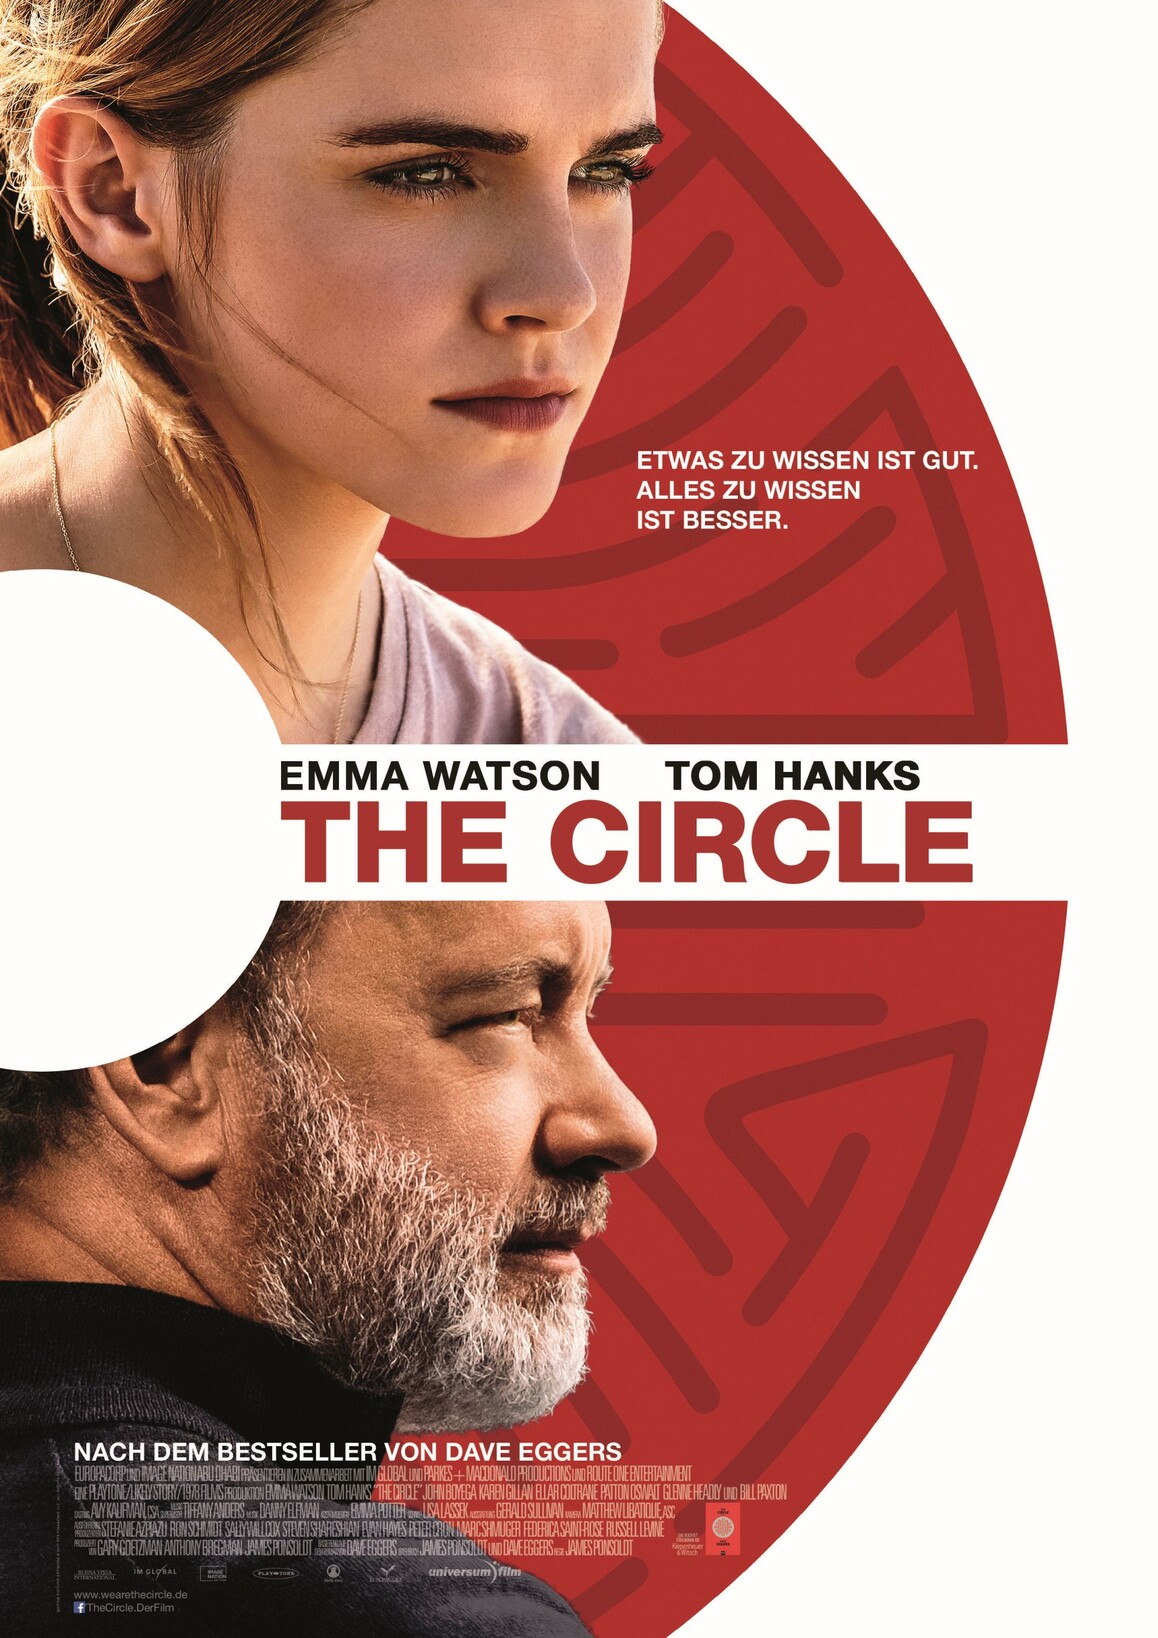 Filmplakat zu The Circle mit Tom Hanks und Emma Watson.